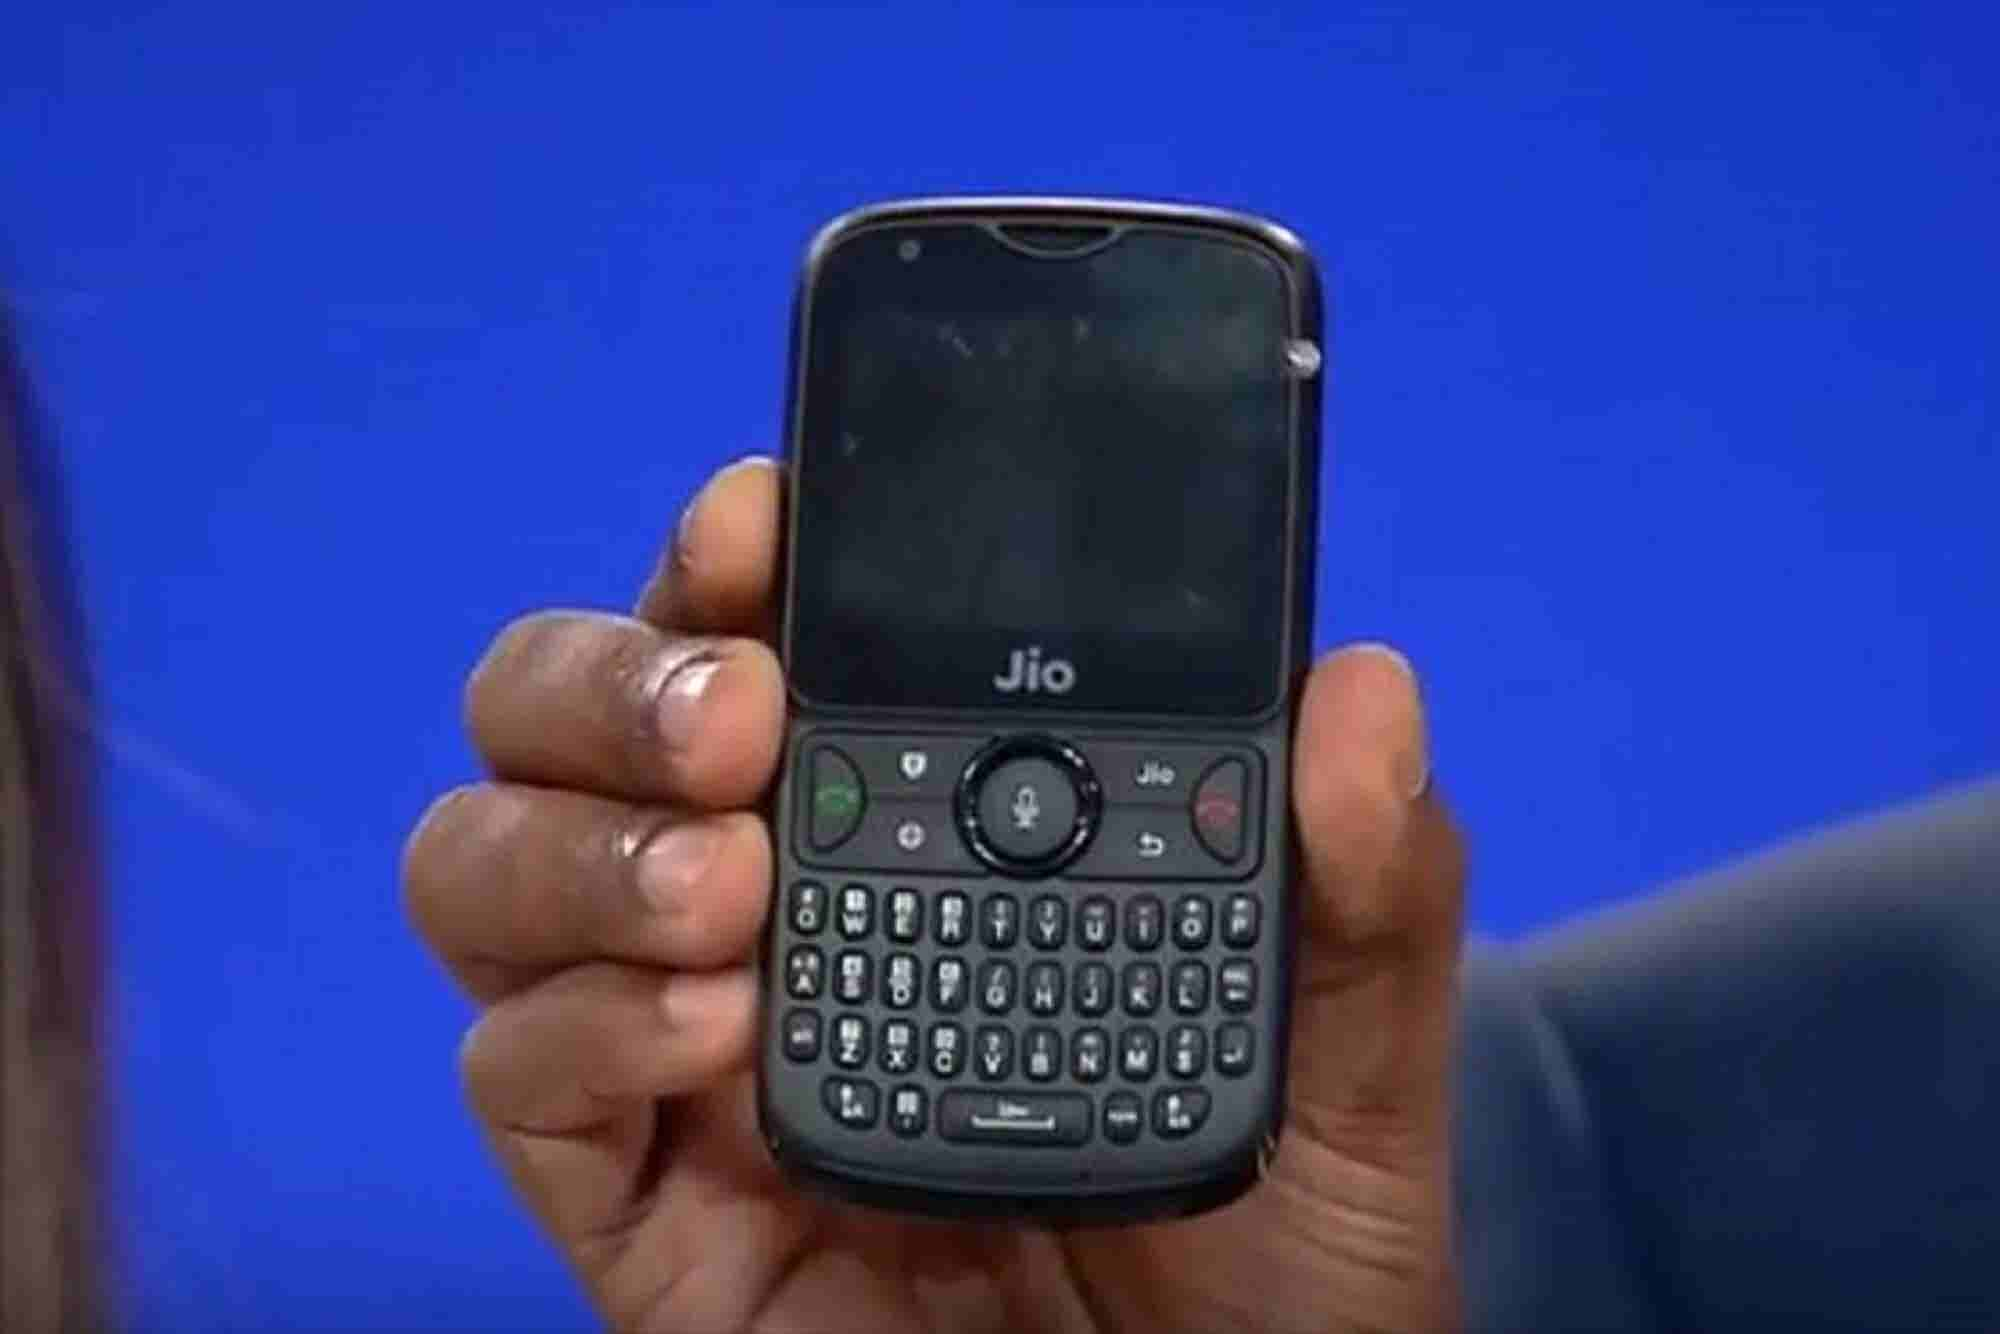 Reliance Unveils JioPhone2 & Now Indian Train Passengers can Keep a Close Eye on the Food: 4 Things to Know Today